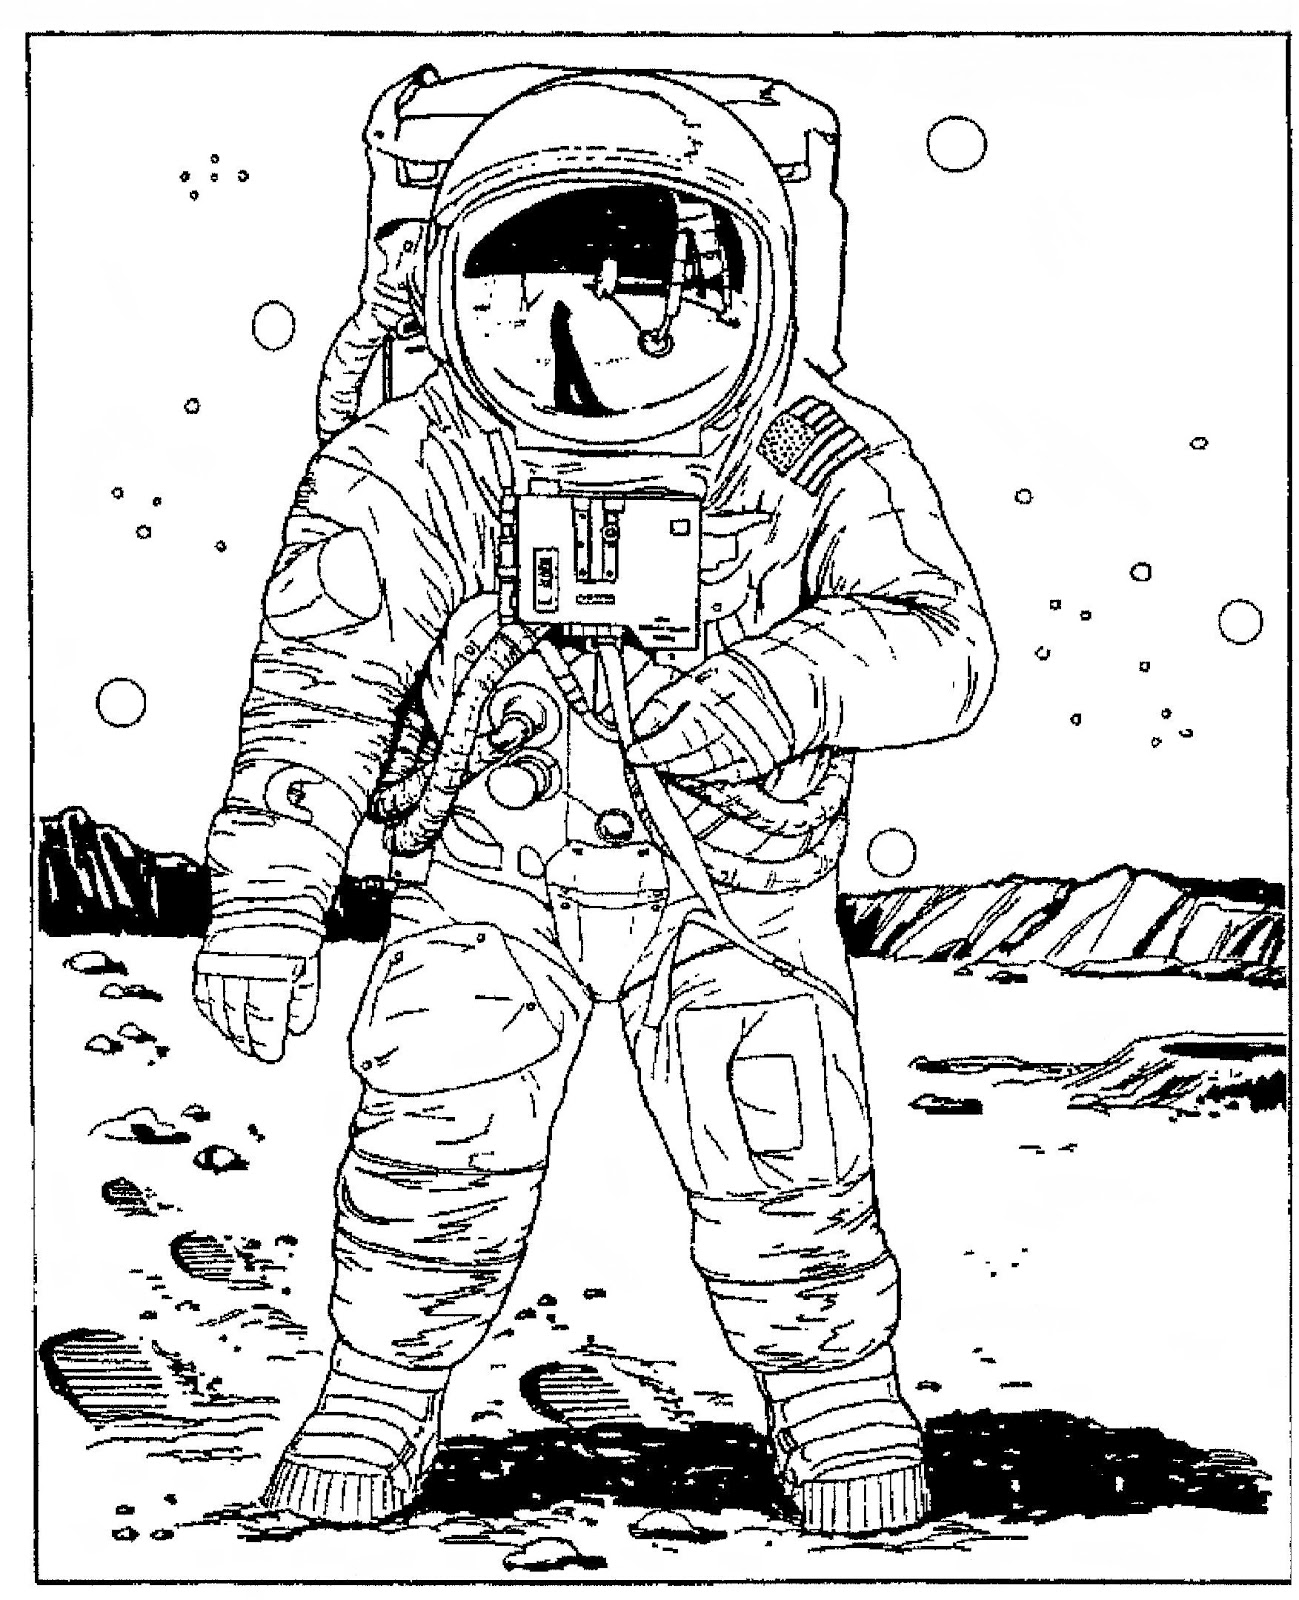 real astronaut drawings - photo #3